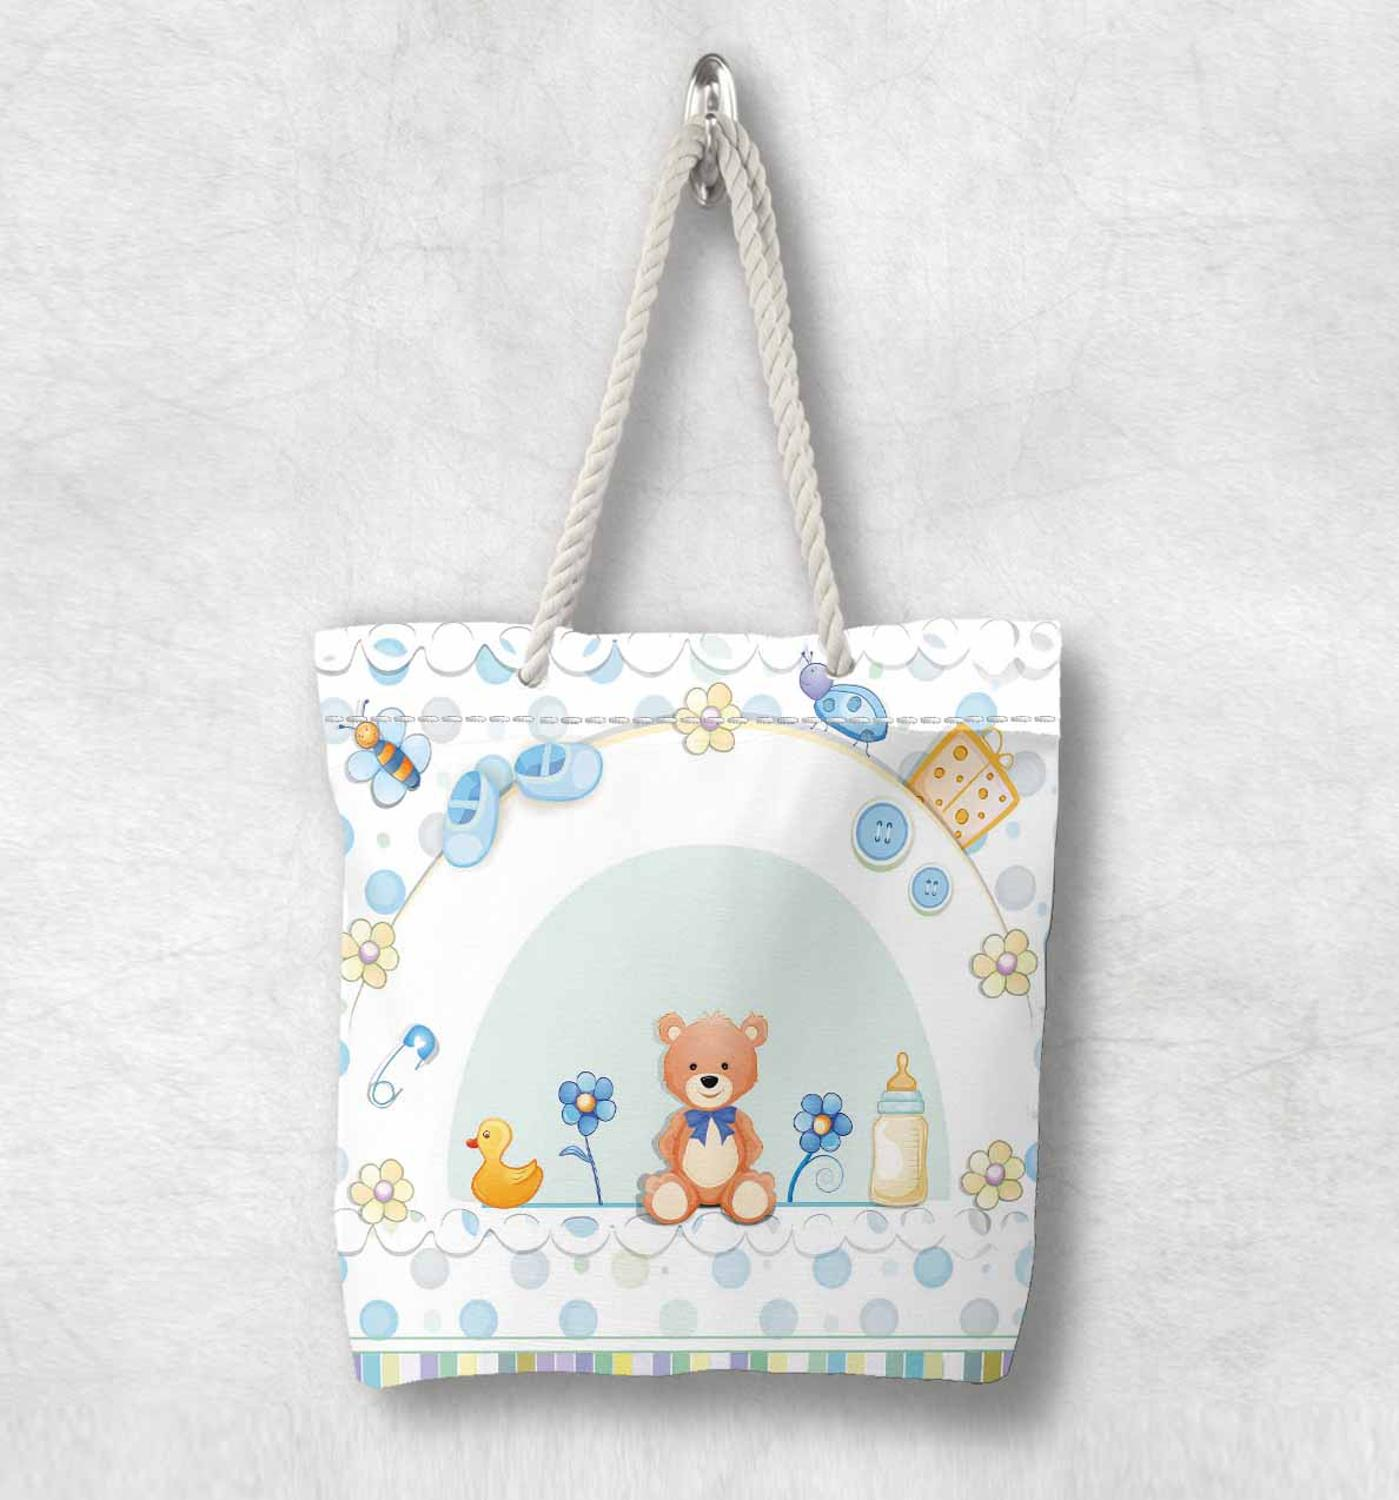 Else Blue Baby Boots Brown Bears Ducks New Fashion White Rope Handle Canvas Bag  Cartoon Print Zippered Tote Bag Shoulder Bag